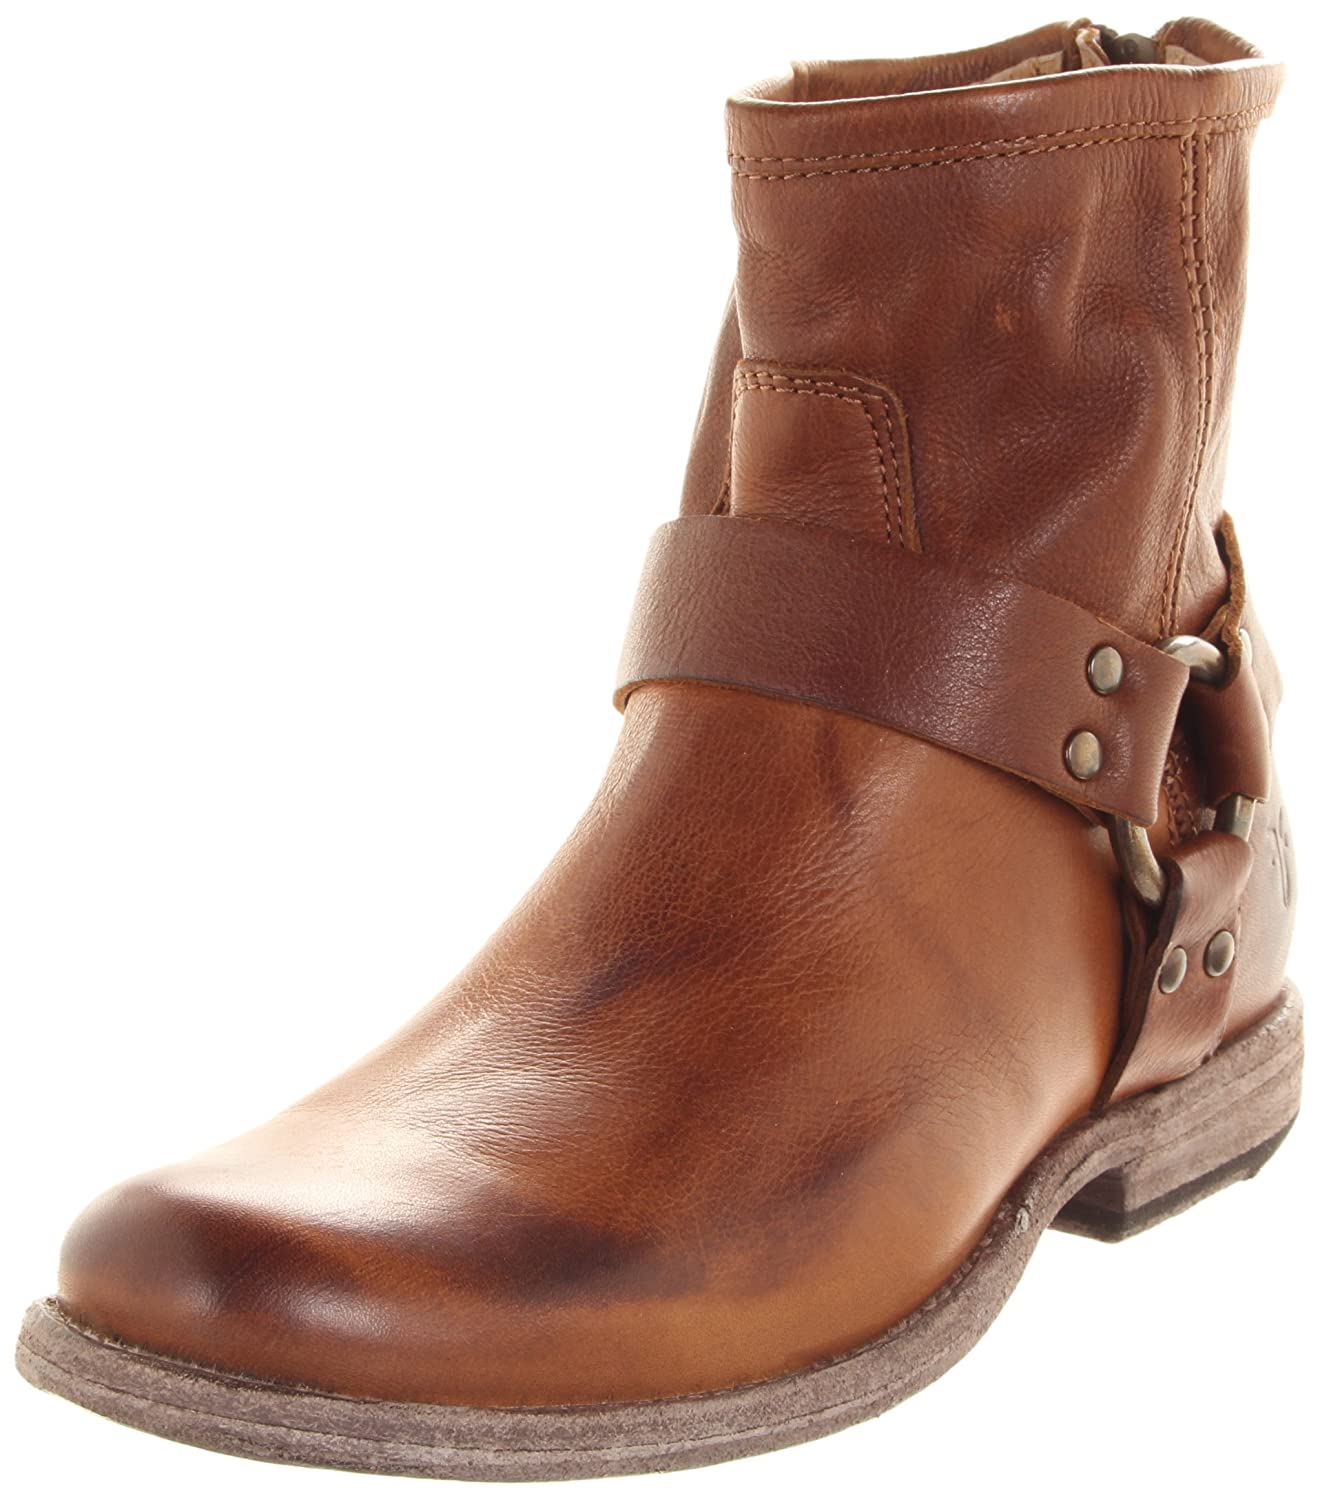 Cognac Soft Vintage Leather Frye Women's Phillip Harness Ankle Boot